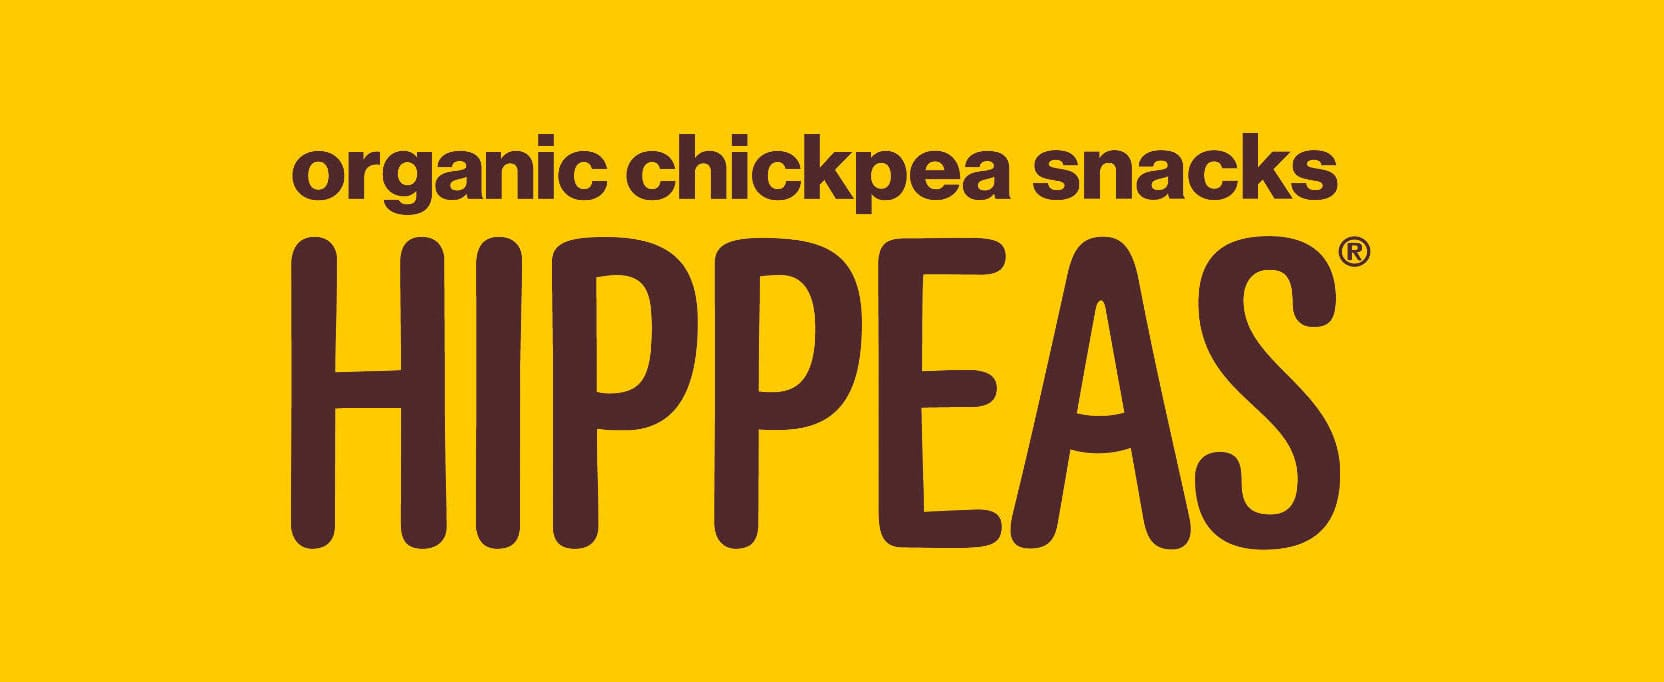 HIPPEAS® Spreading Peas & Love With a Pledge to Whole Kids Foundation